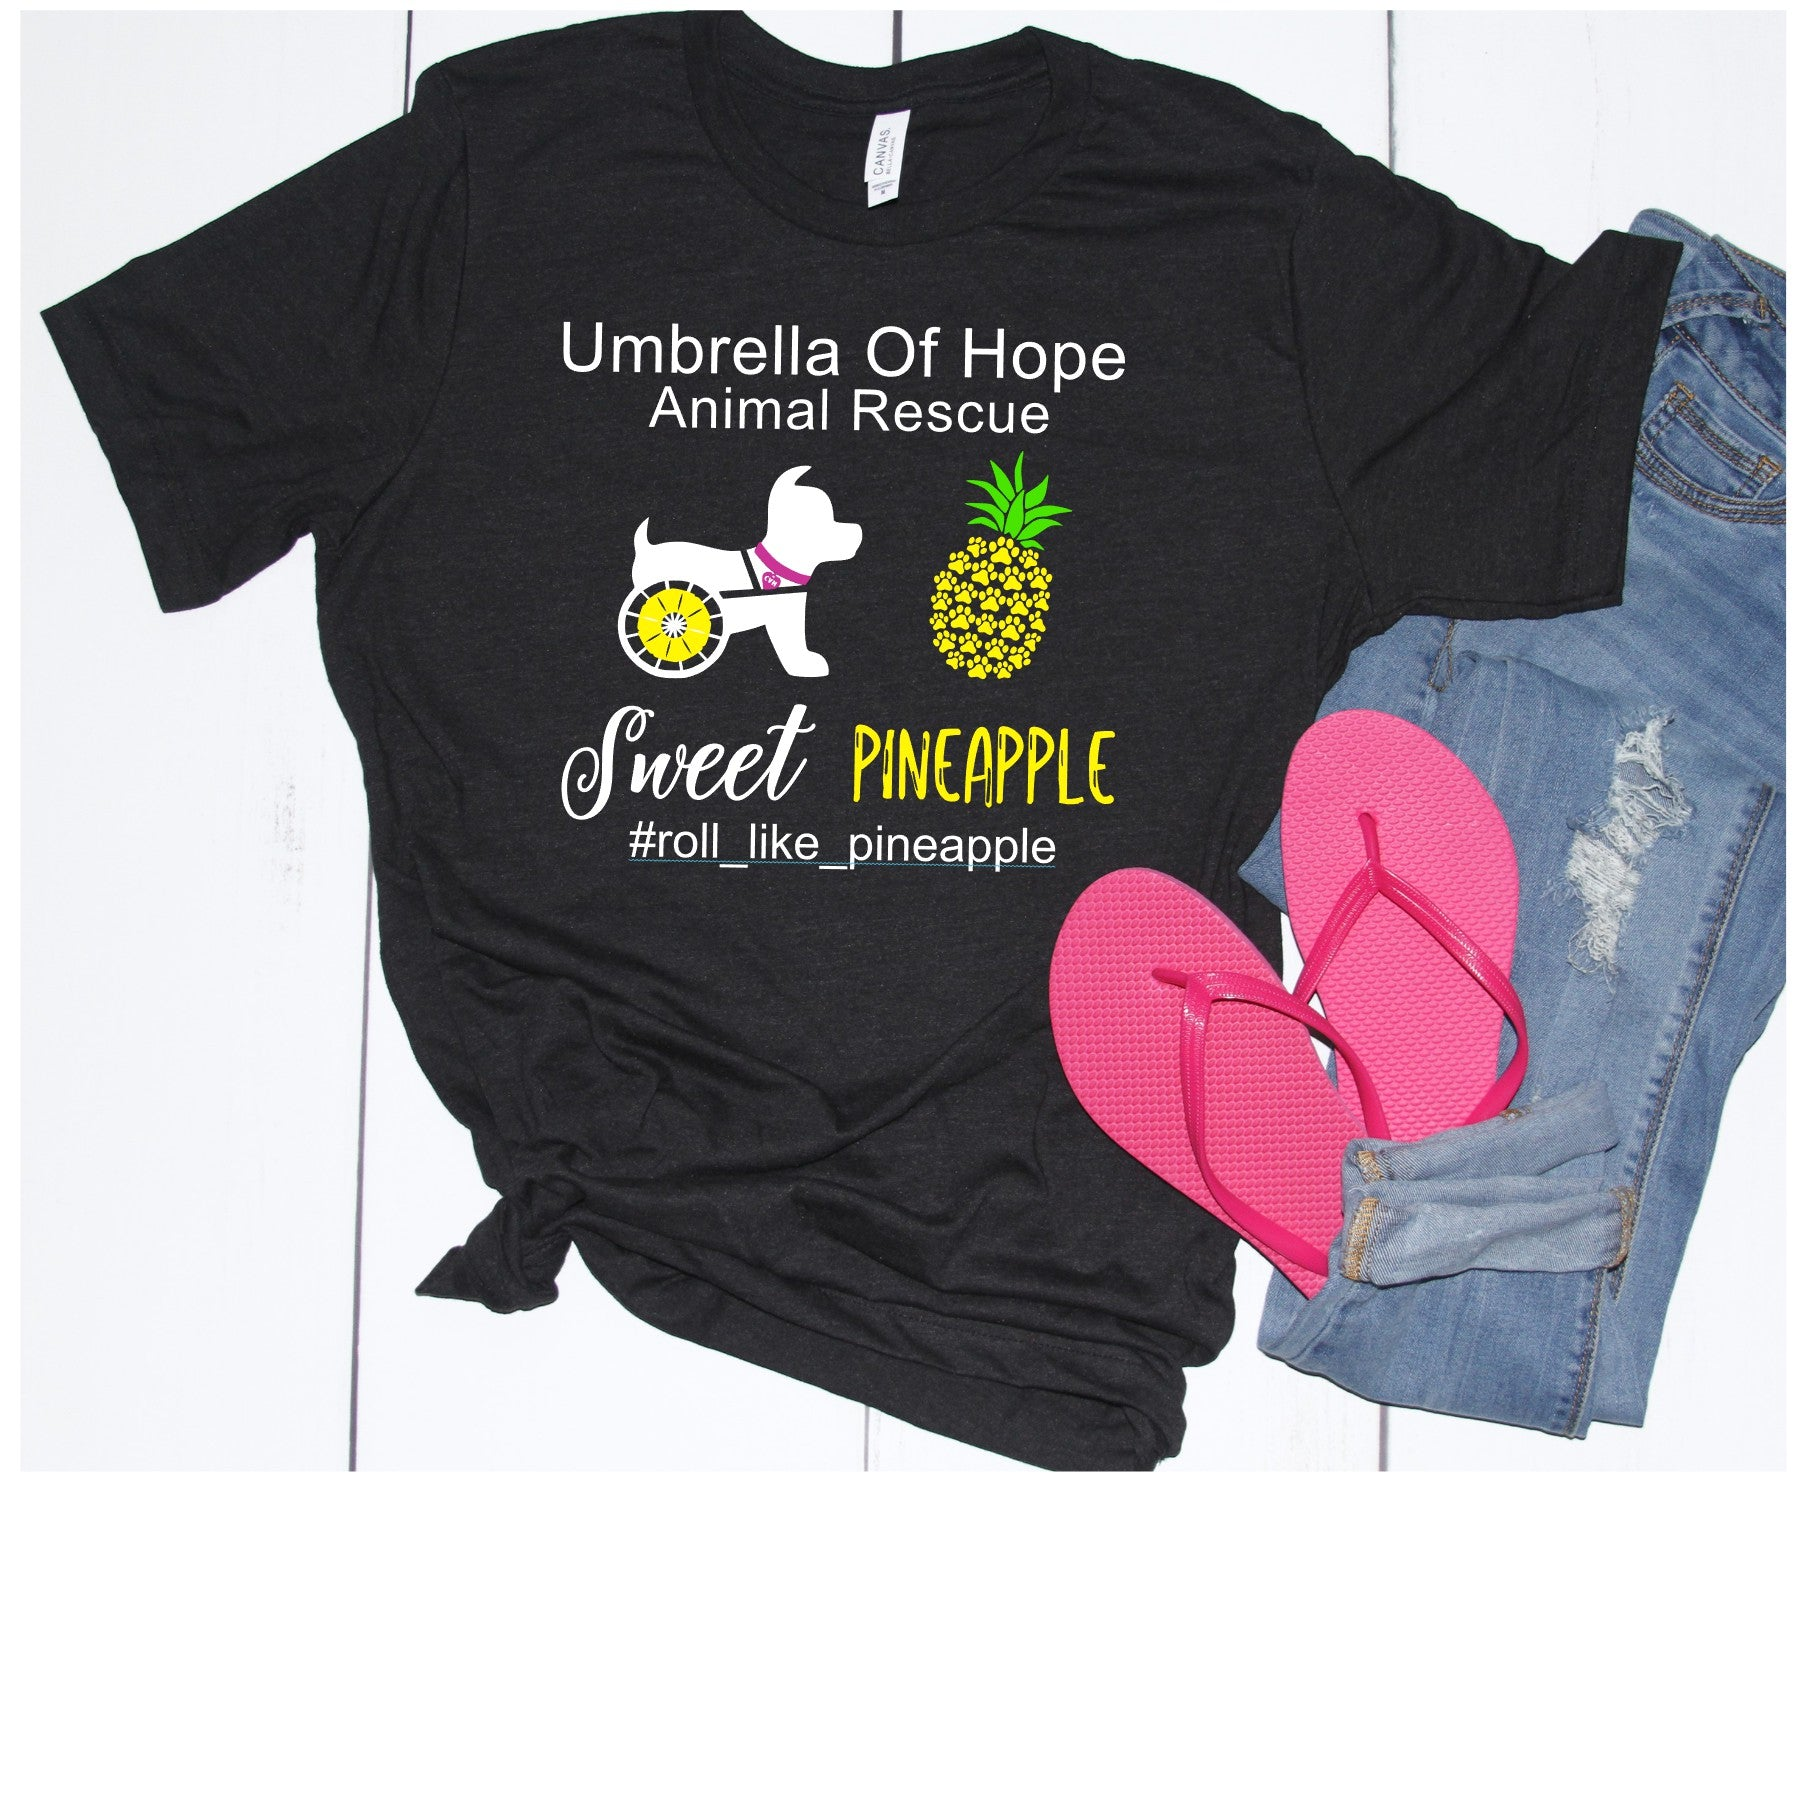 Sweet Pineapple Umbrella of Hope Unisex - Ruff Life Rescue Wear